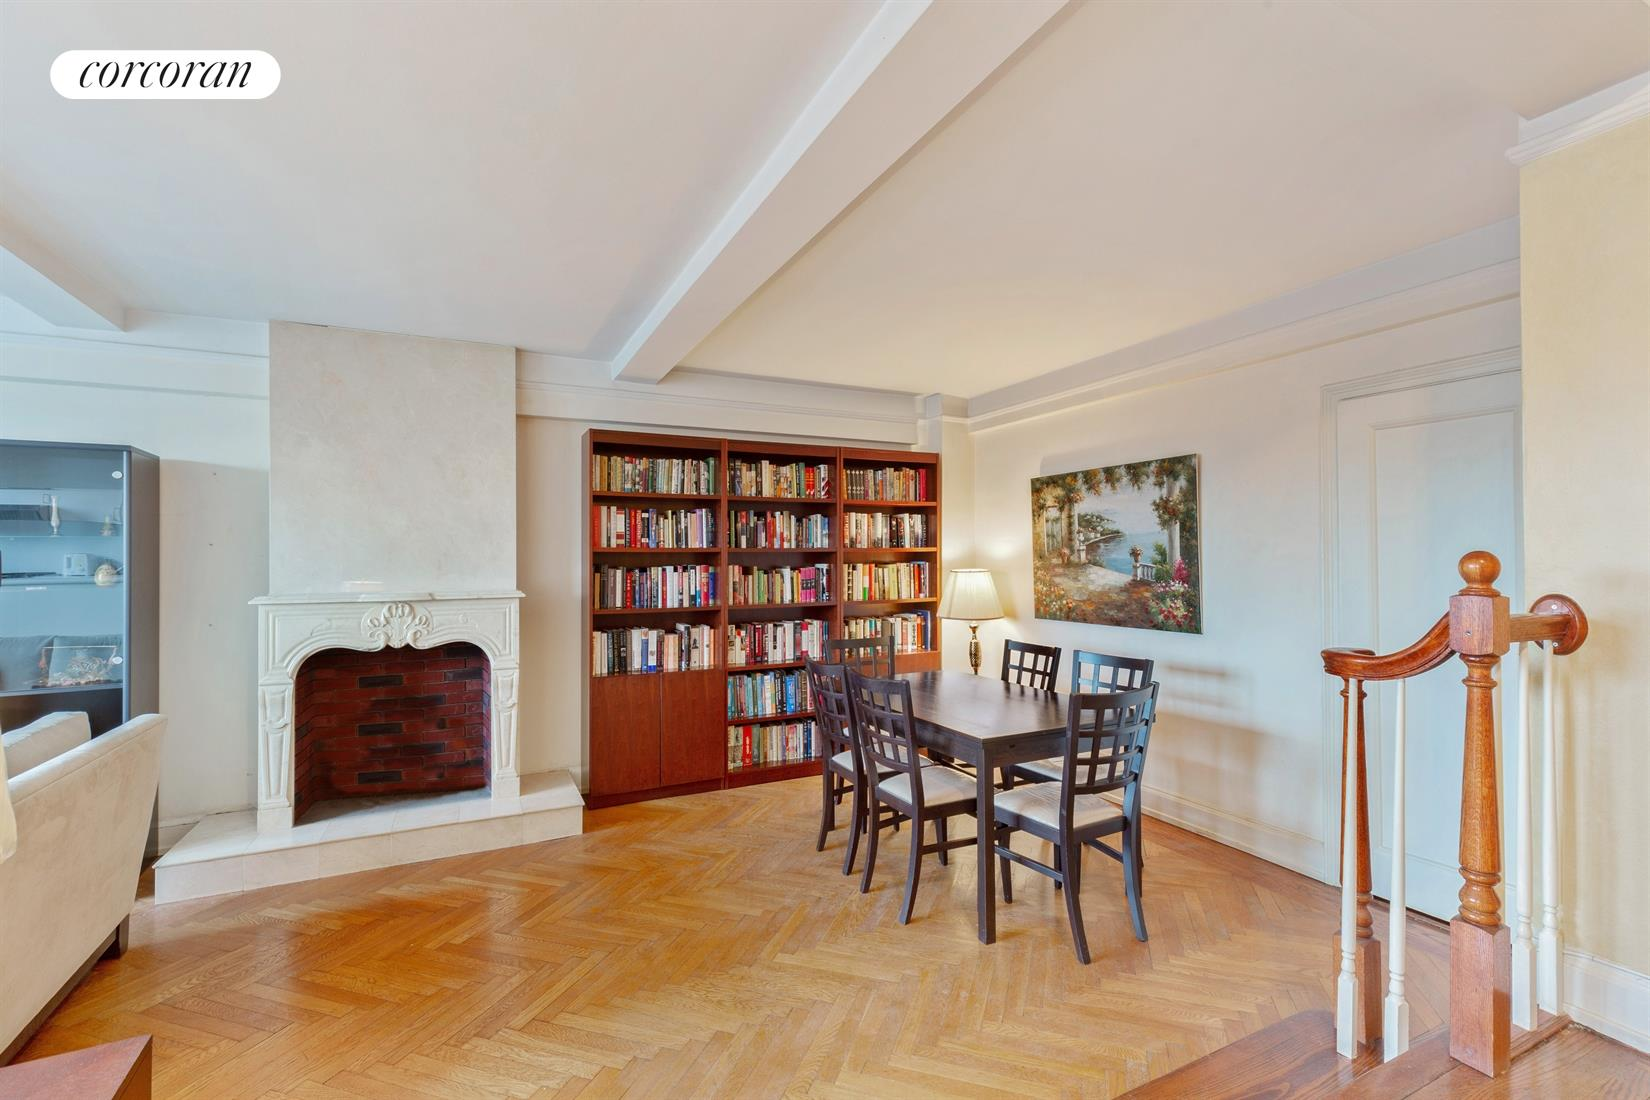 336 West End Avenue, 14D, North Facing Views of the Upper West Side